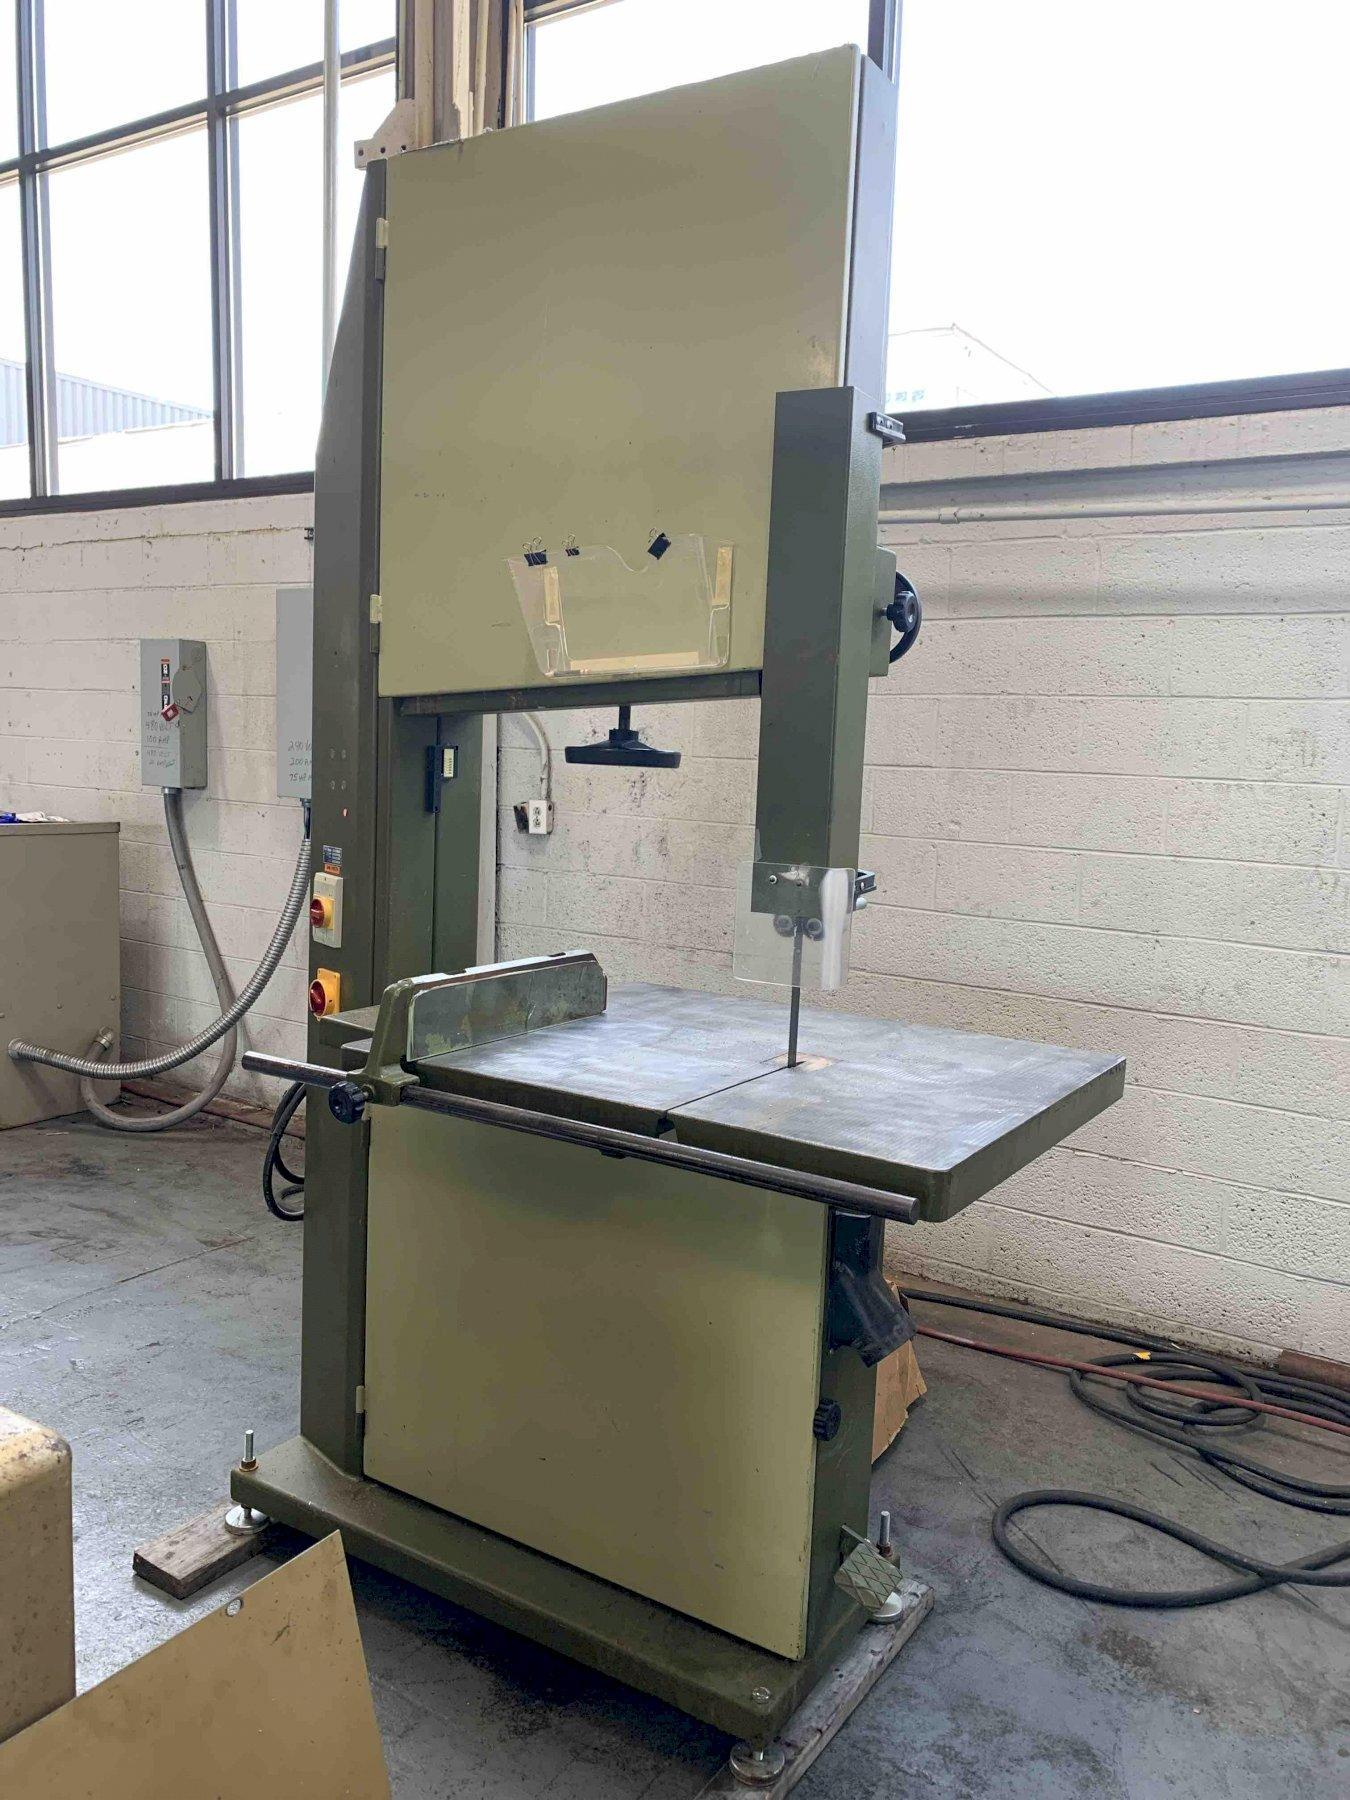 "USED MEBER 32"" VERTICAL WOODWORKING BANDSAW / RESAW, Year 1990, Stock # 10762"